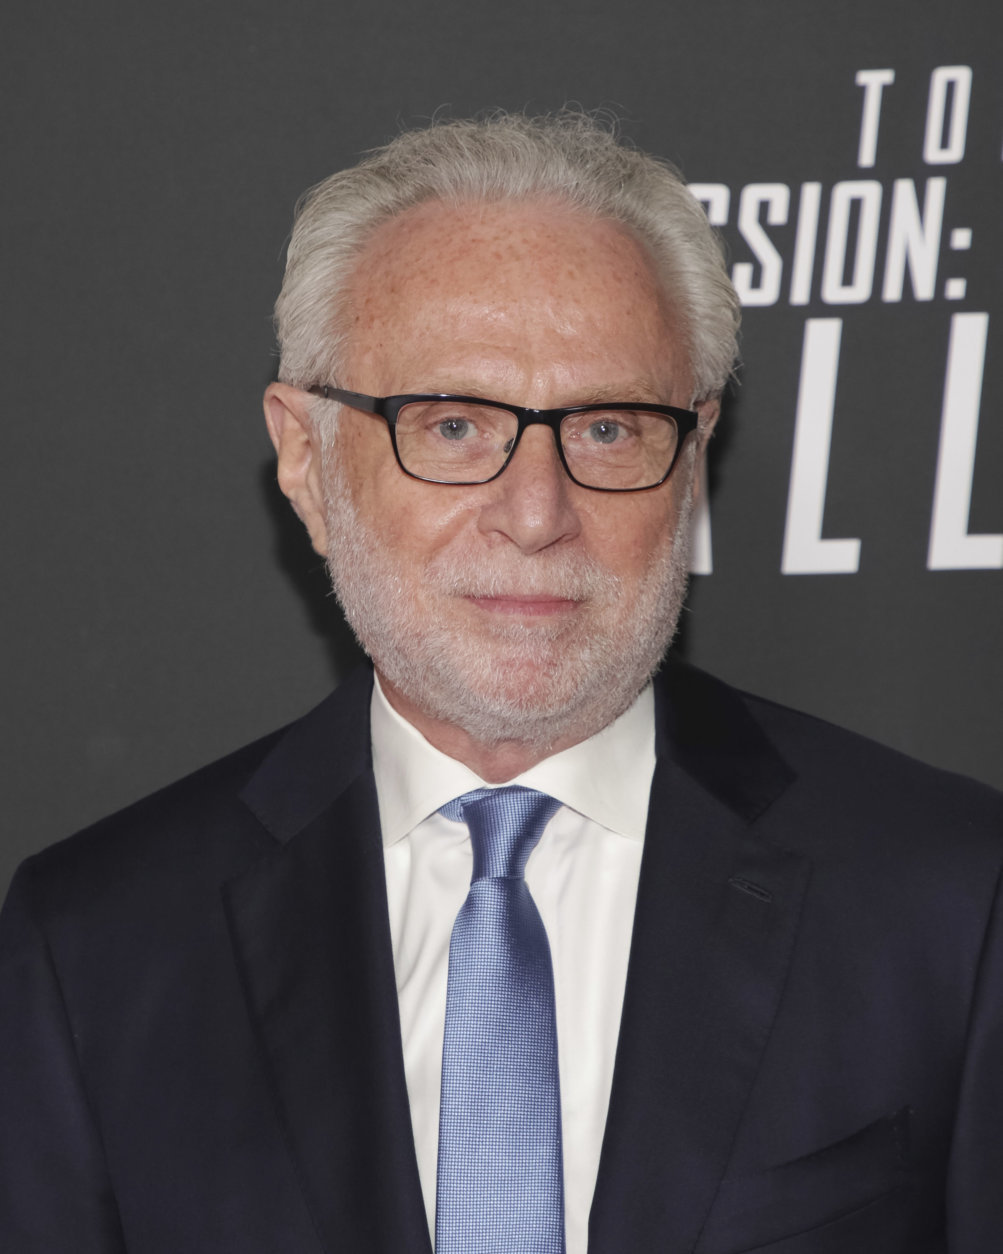 """Journalist Wolf Blitzer attends the U.S. premiere of """"Mission: Impossible - Fallout"""" at The Smithsonian National Air and Space Museum on Sunday, July 22, 2018 in Washington. (Photo by Brent N. Clarke/Invision/AP)"""